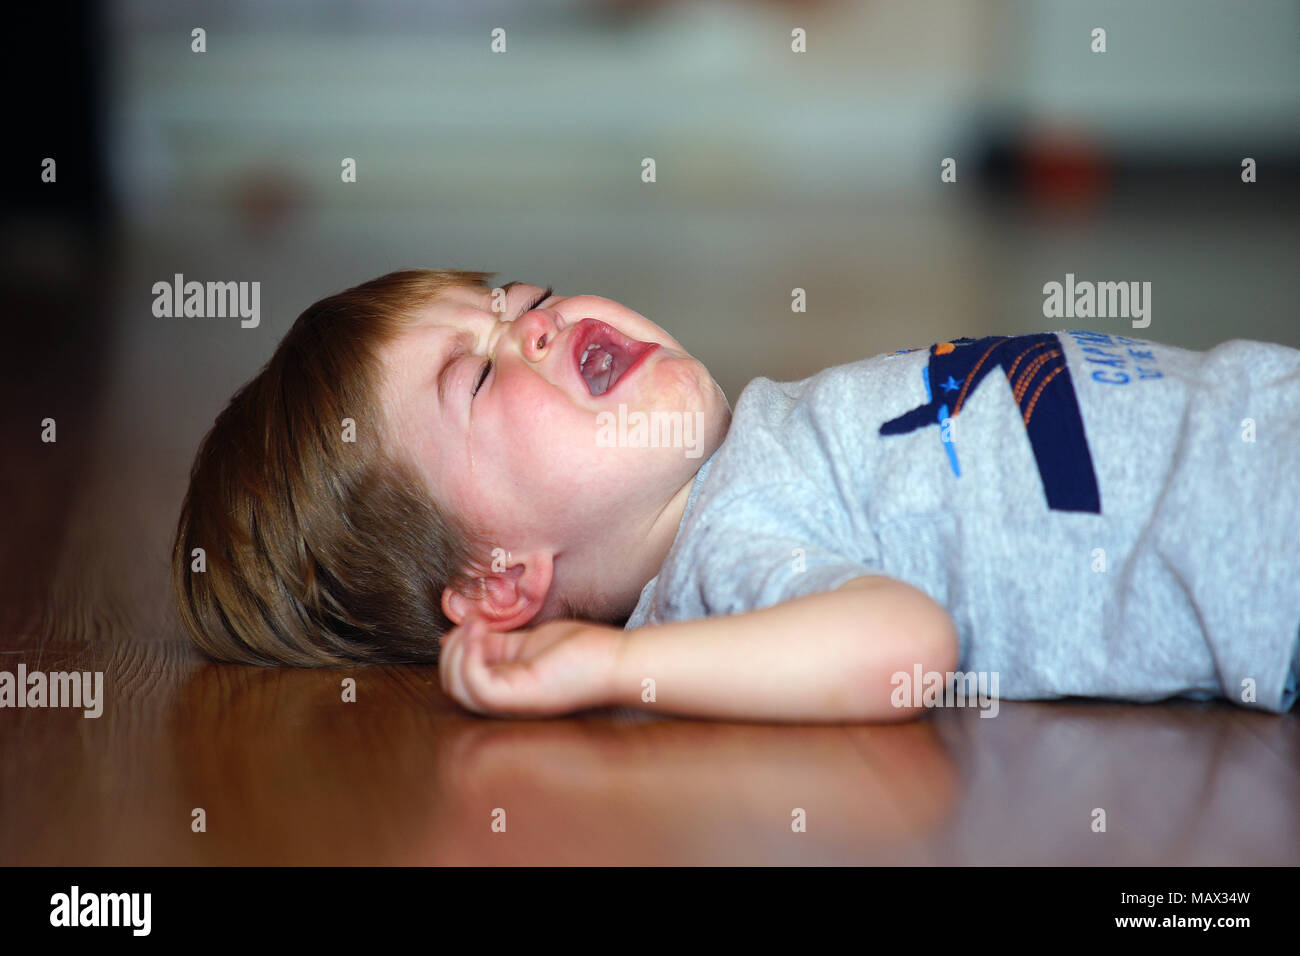 Montreal,Canada,8,August,2017.A 2 year old child having a temper tandrum on floor.Credit:Mario Beauregard/Alamy Live News - Stock Image